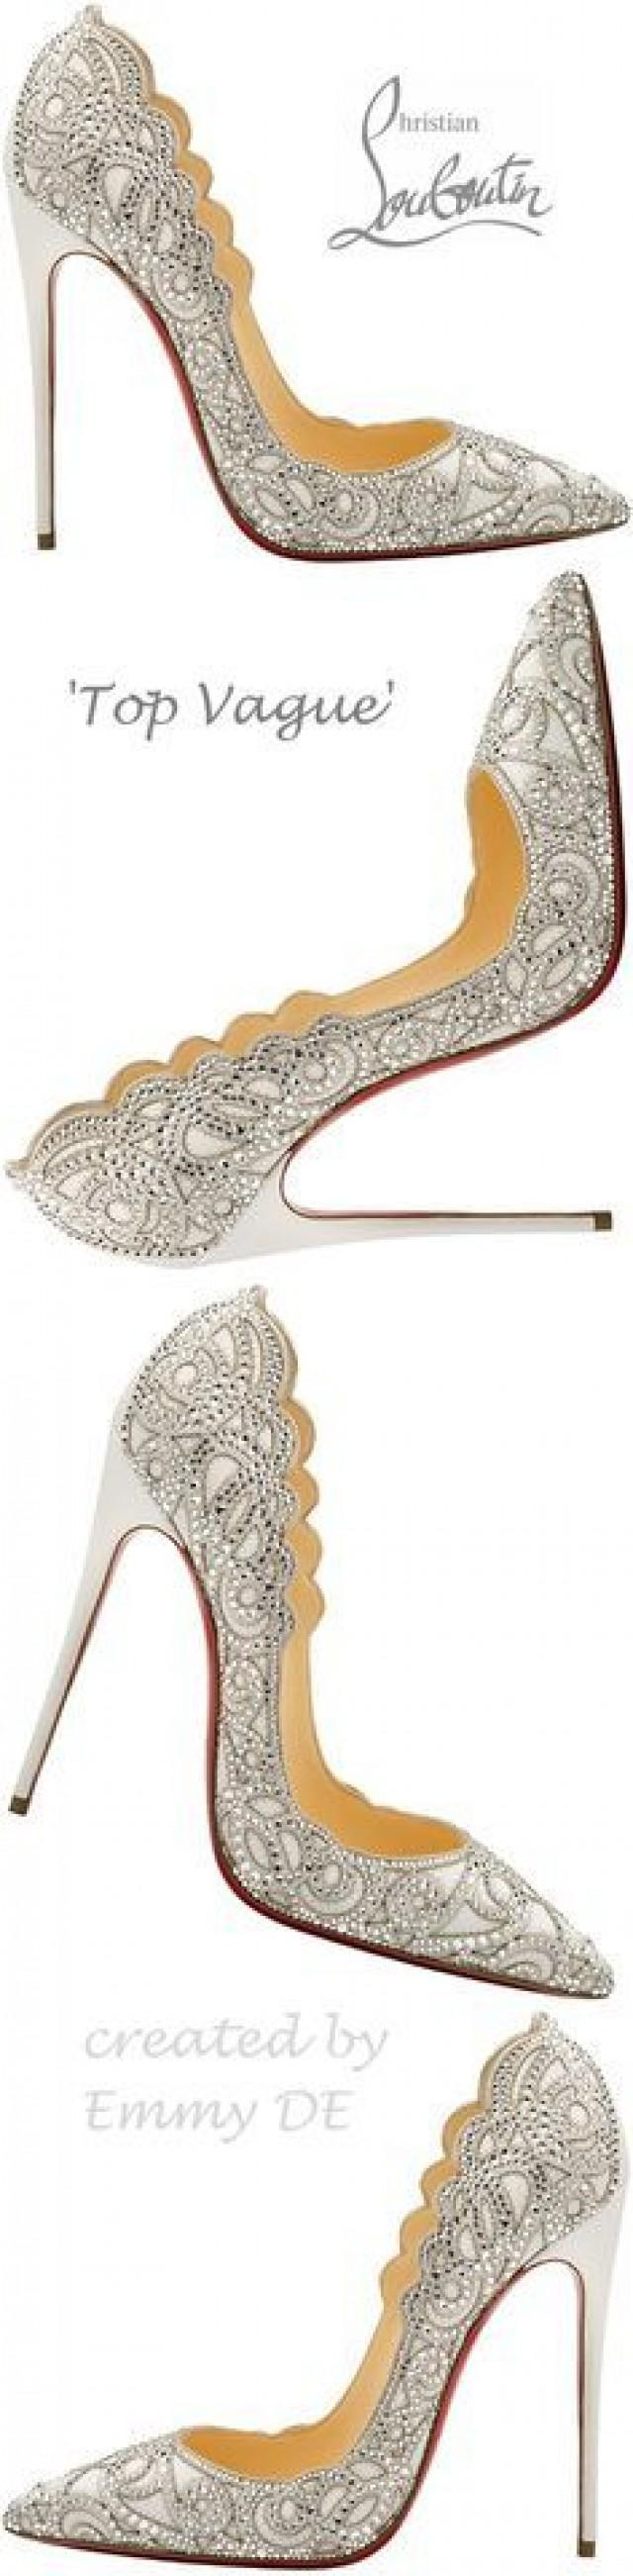 online retailer 1adad 8a884 Christian Louboutin Outlet Red Bottom Shoes #2772597 - Weddbook